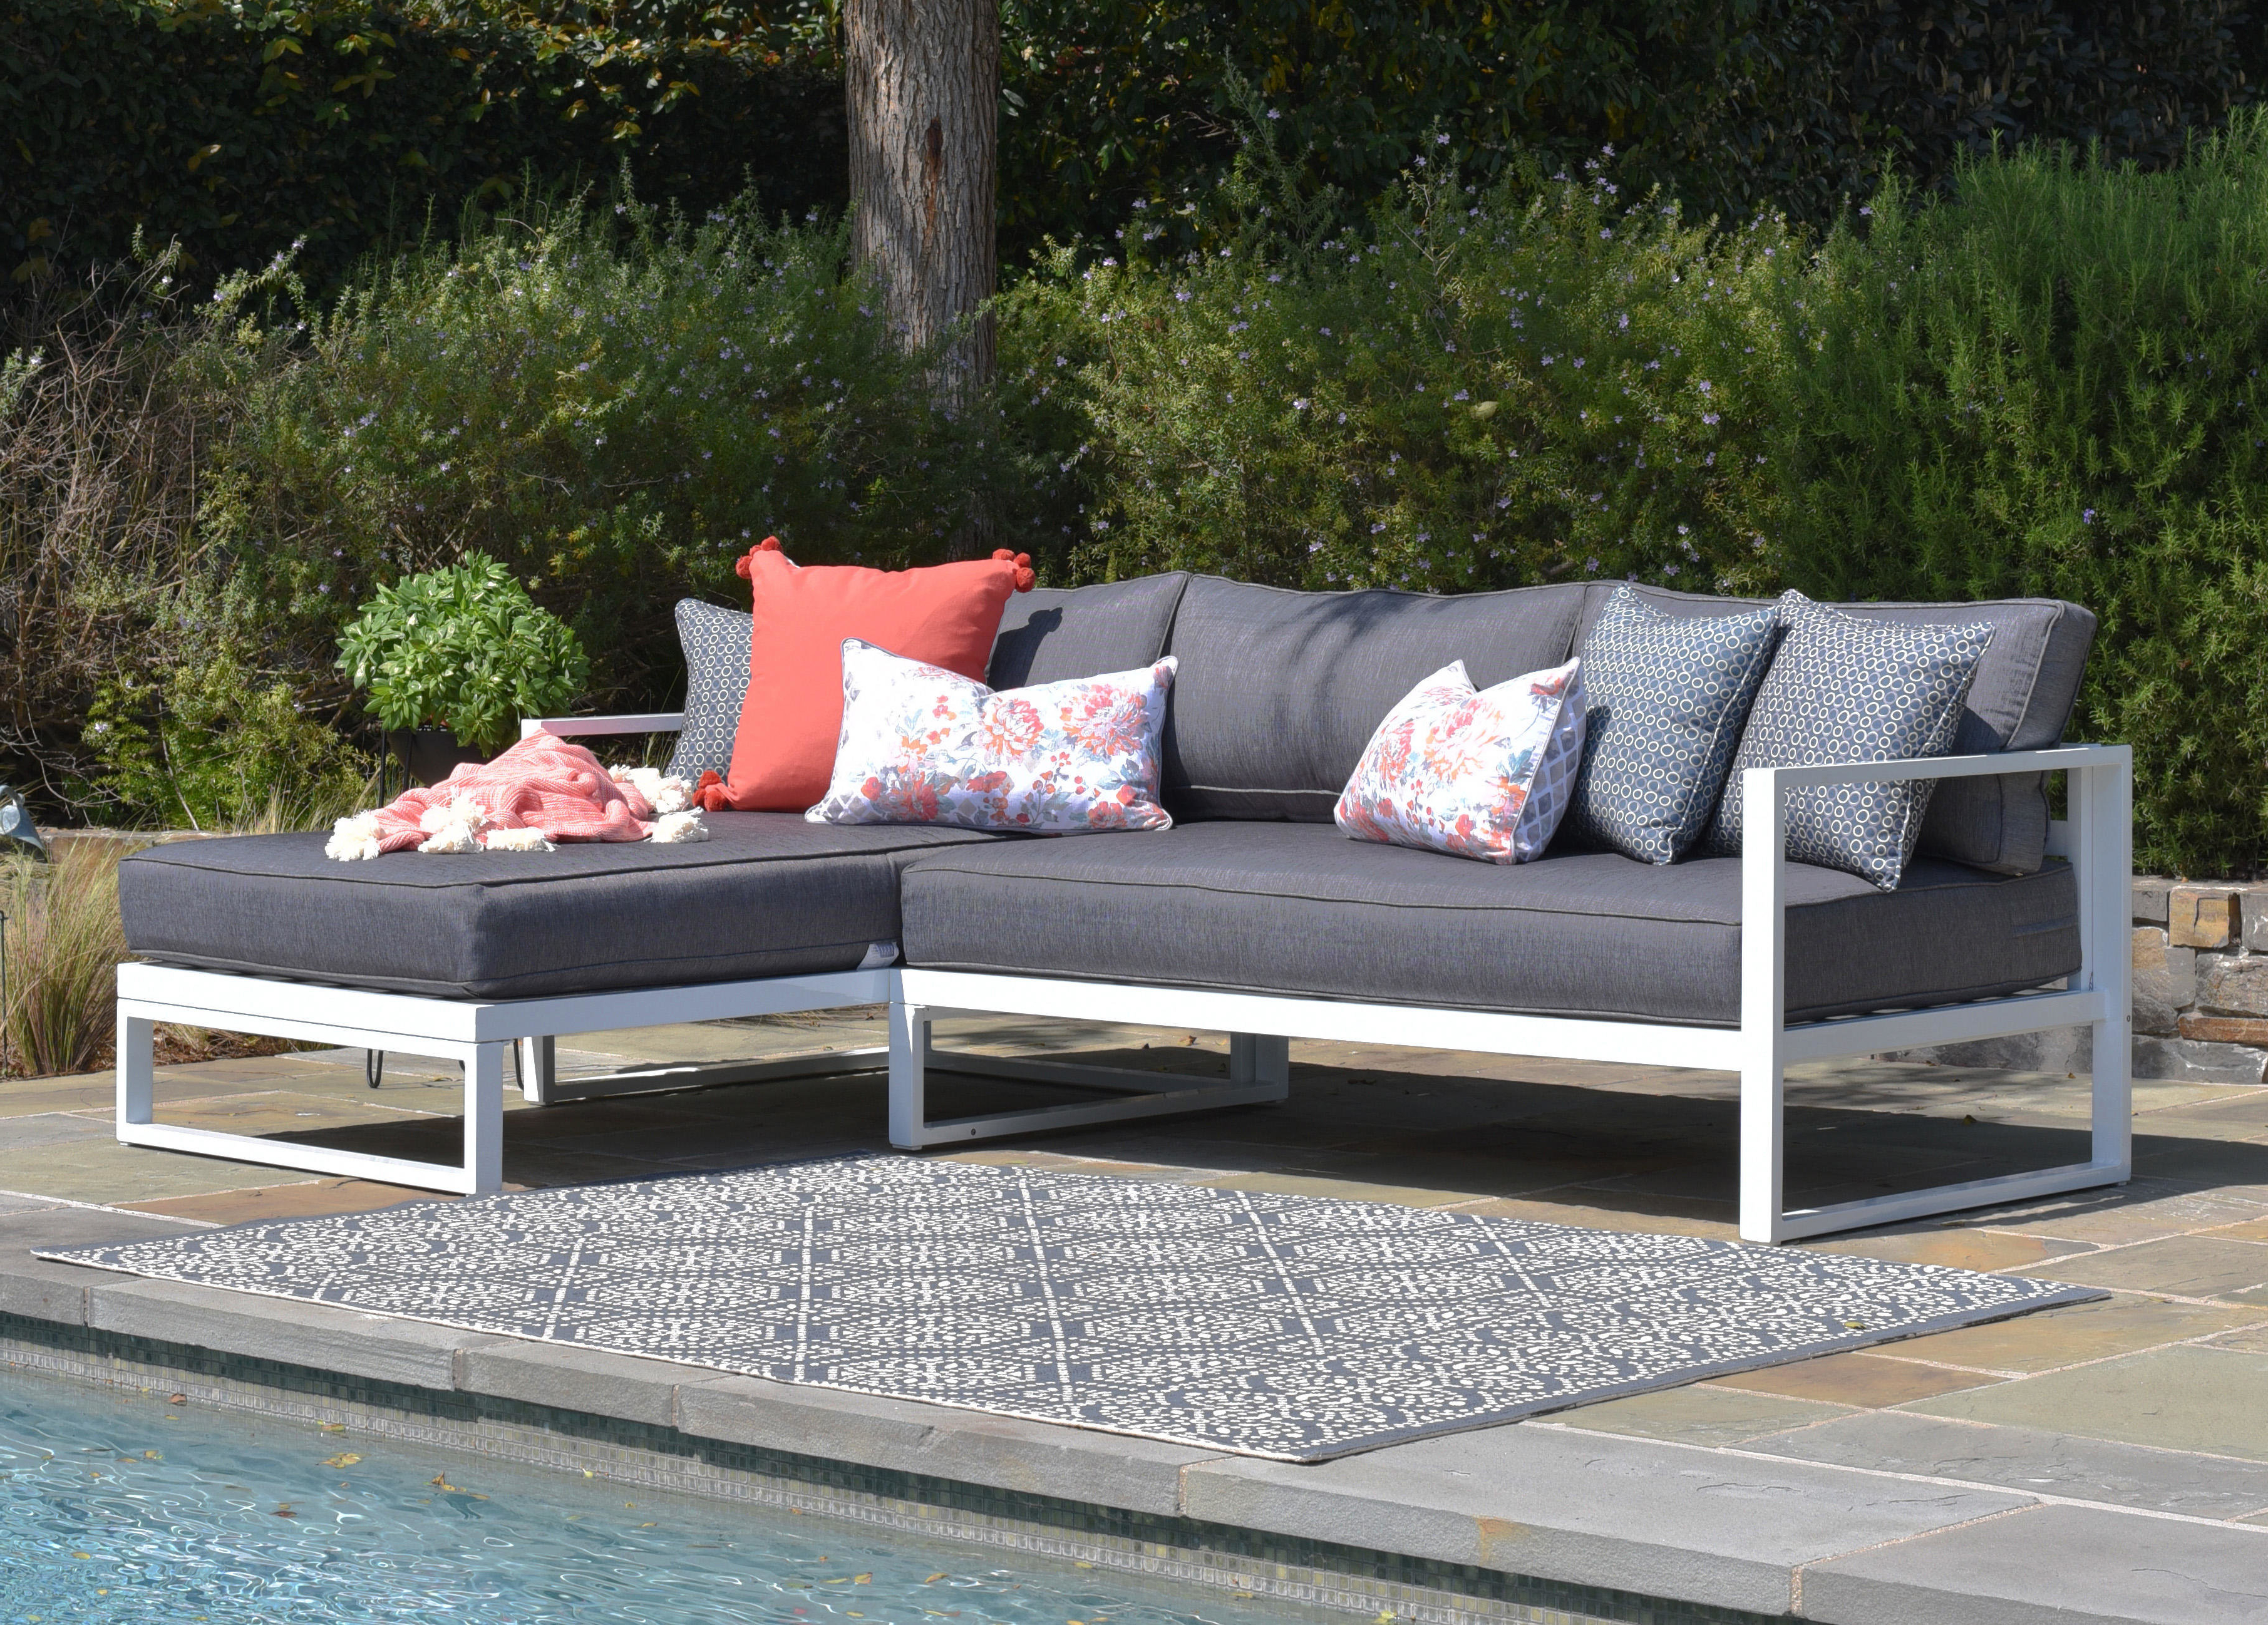 Outdoor Sectional Small Space (View 4 of 20)